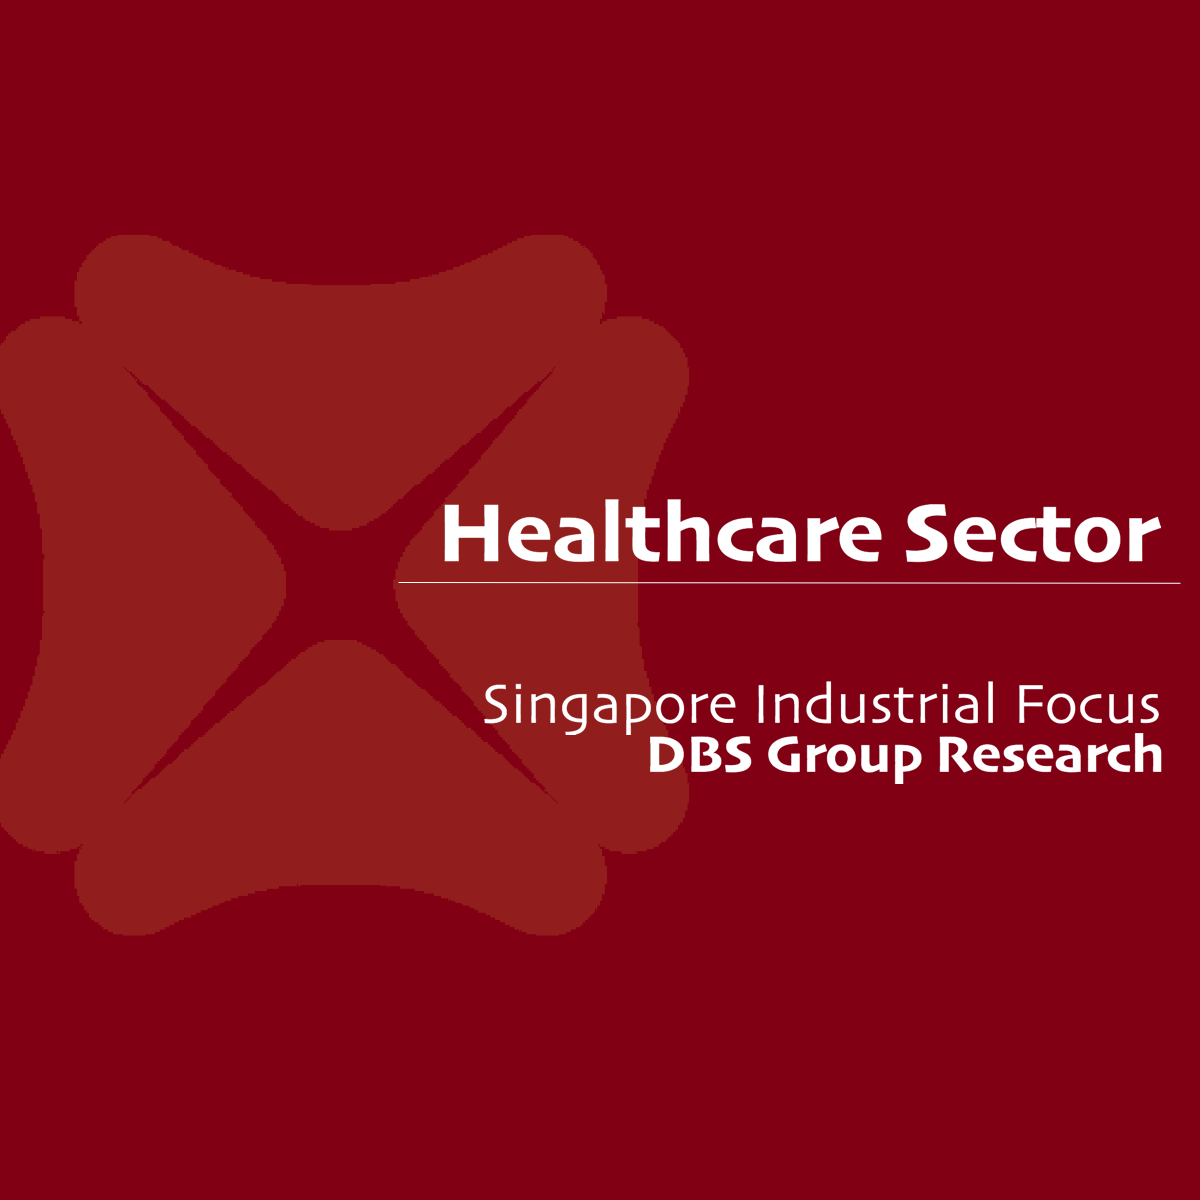 Healthcare Sector - DBS Vickers 2016-12-14: 2017 Outlook ~ Healthy growth prospects